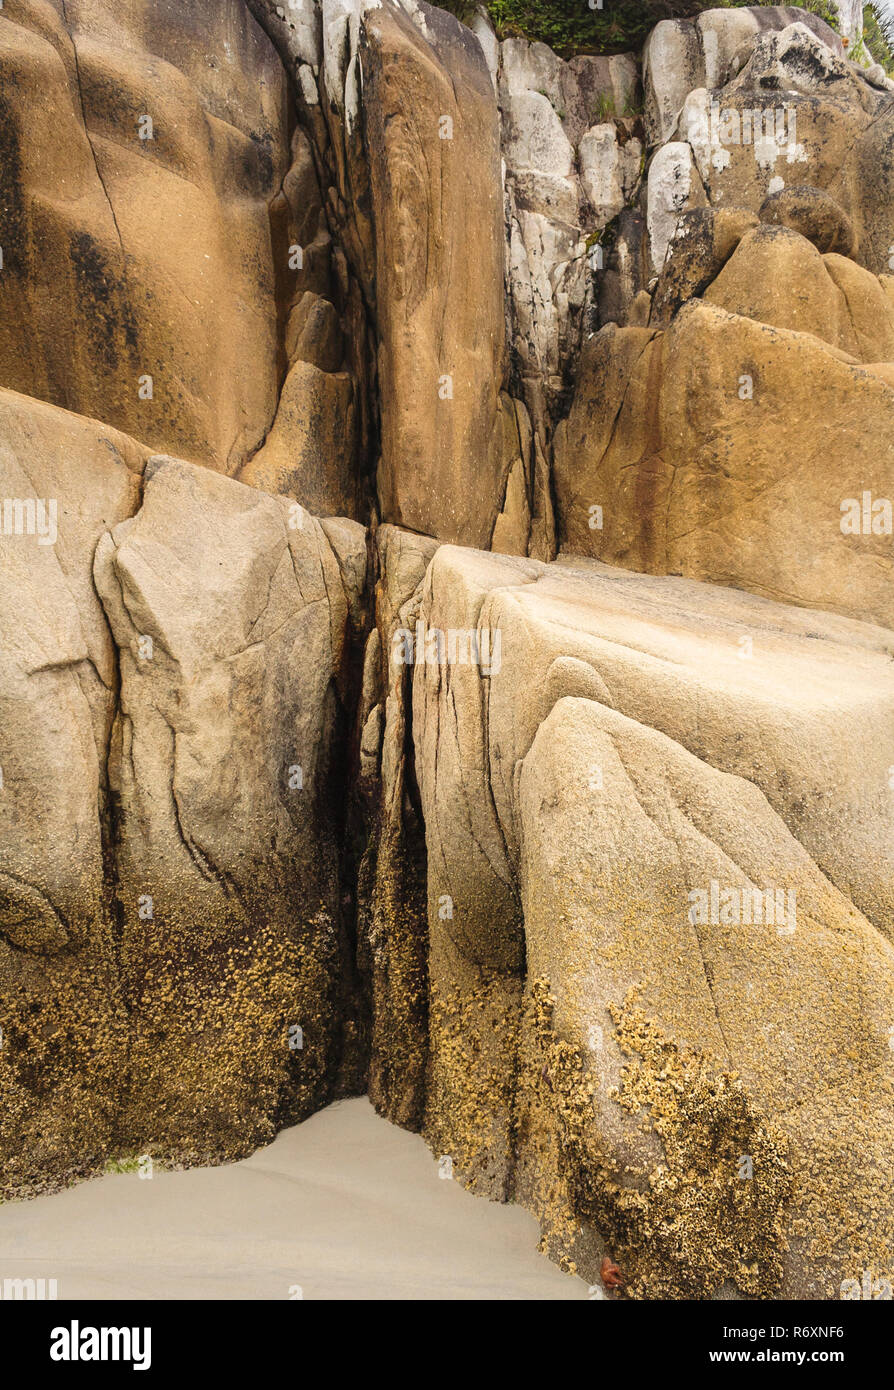 Abstract closeup of an eroded granite bluff at the edge of a sandy  beach, with contrasting hard, soft, smooth and rough textures (British Columbia). Stock Photo